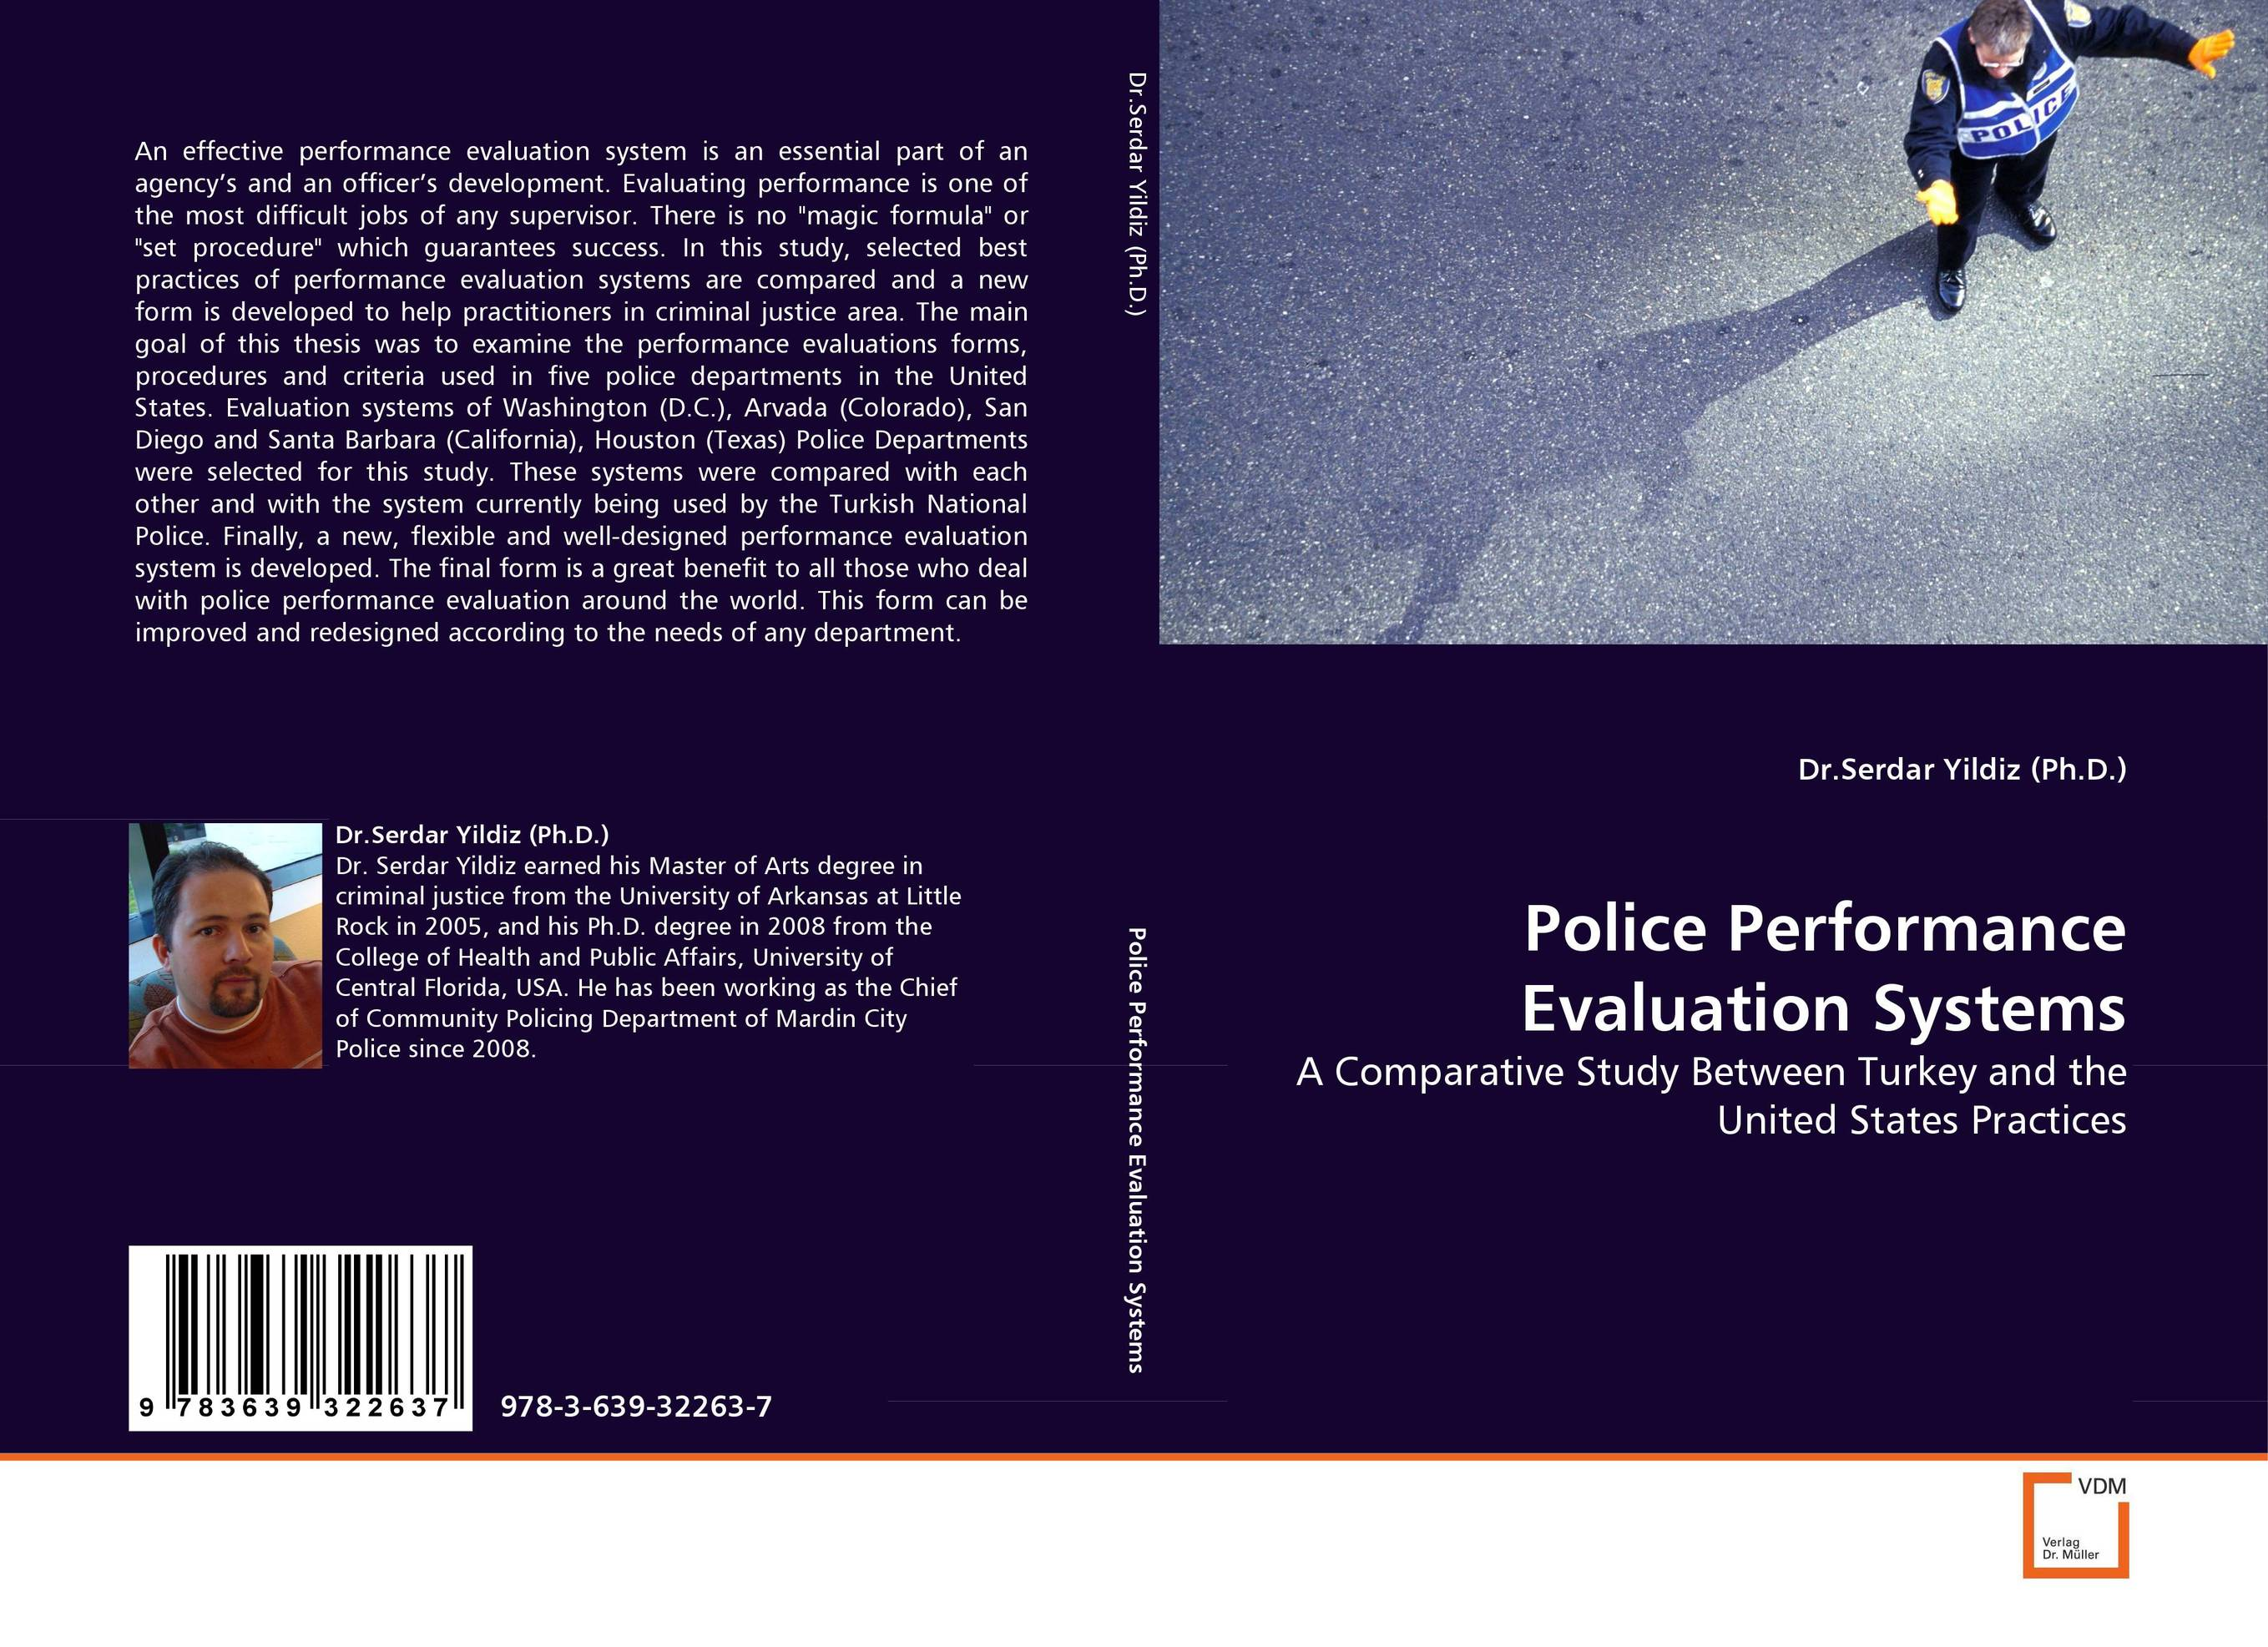 Police Performance Evaluation Systems evaluation and developing an onion peeling system